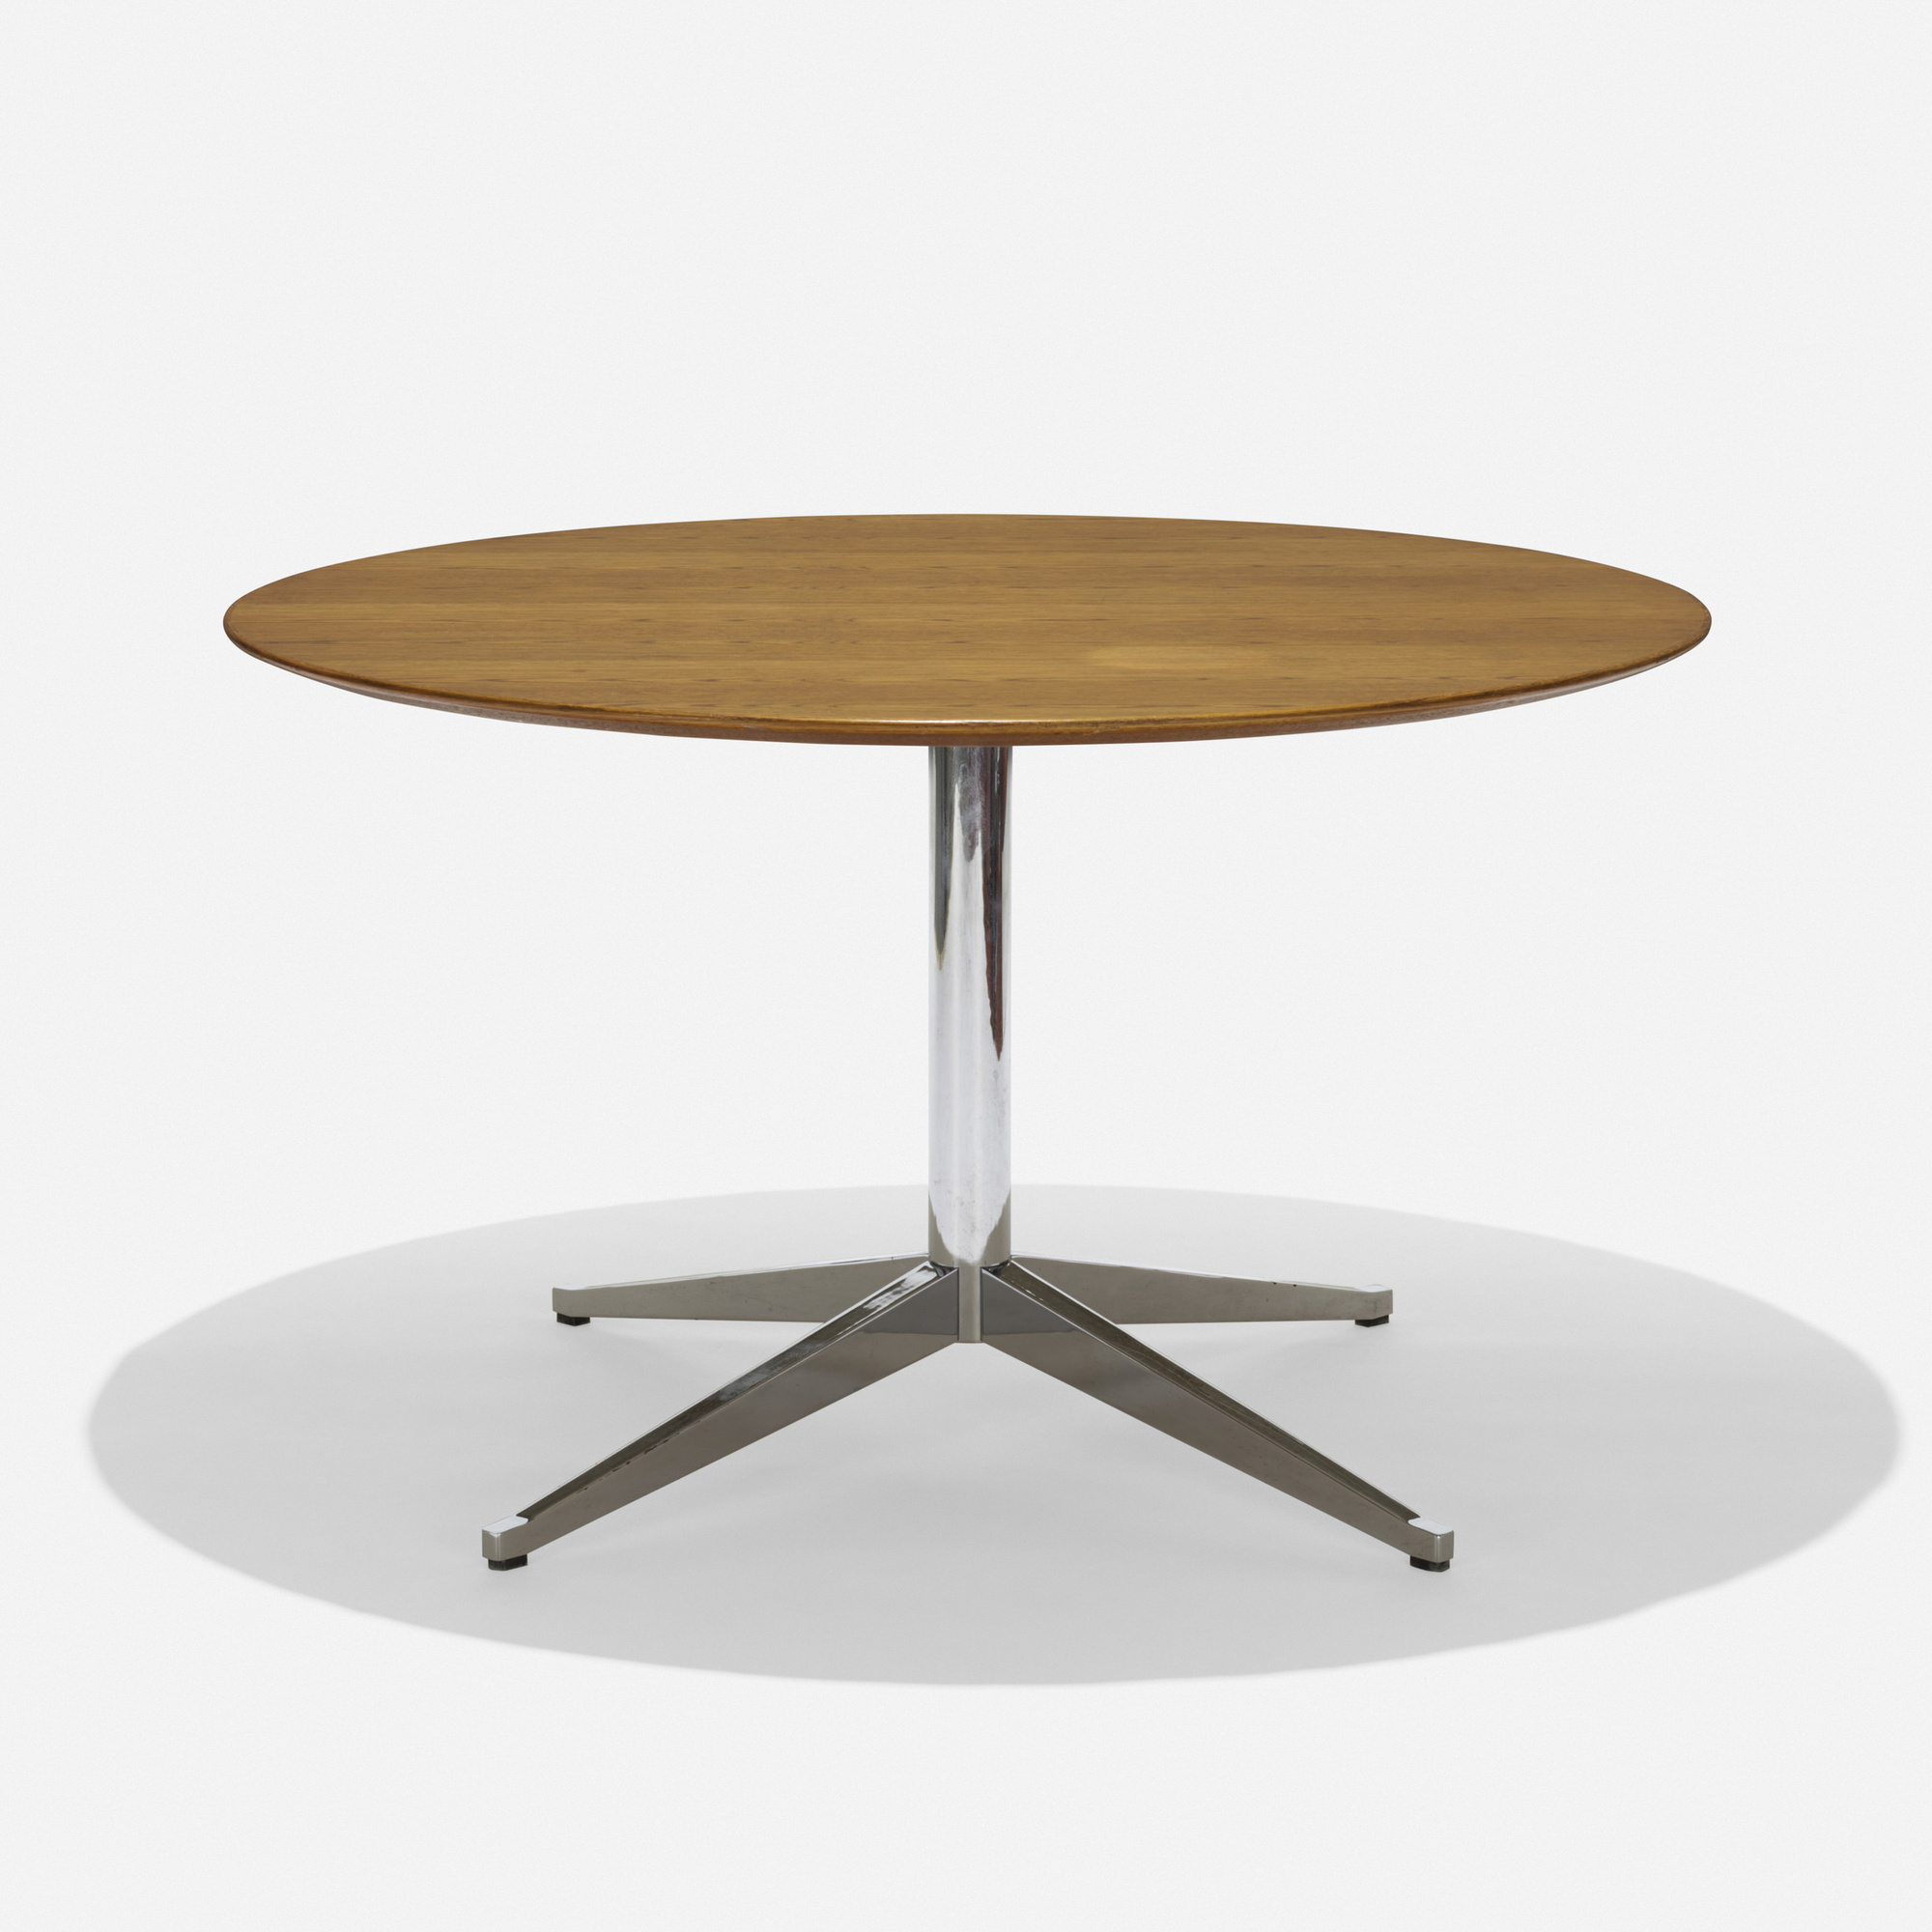 354 florence knoll dining table